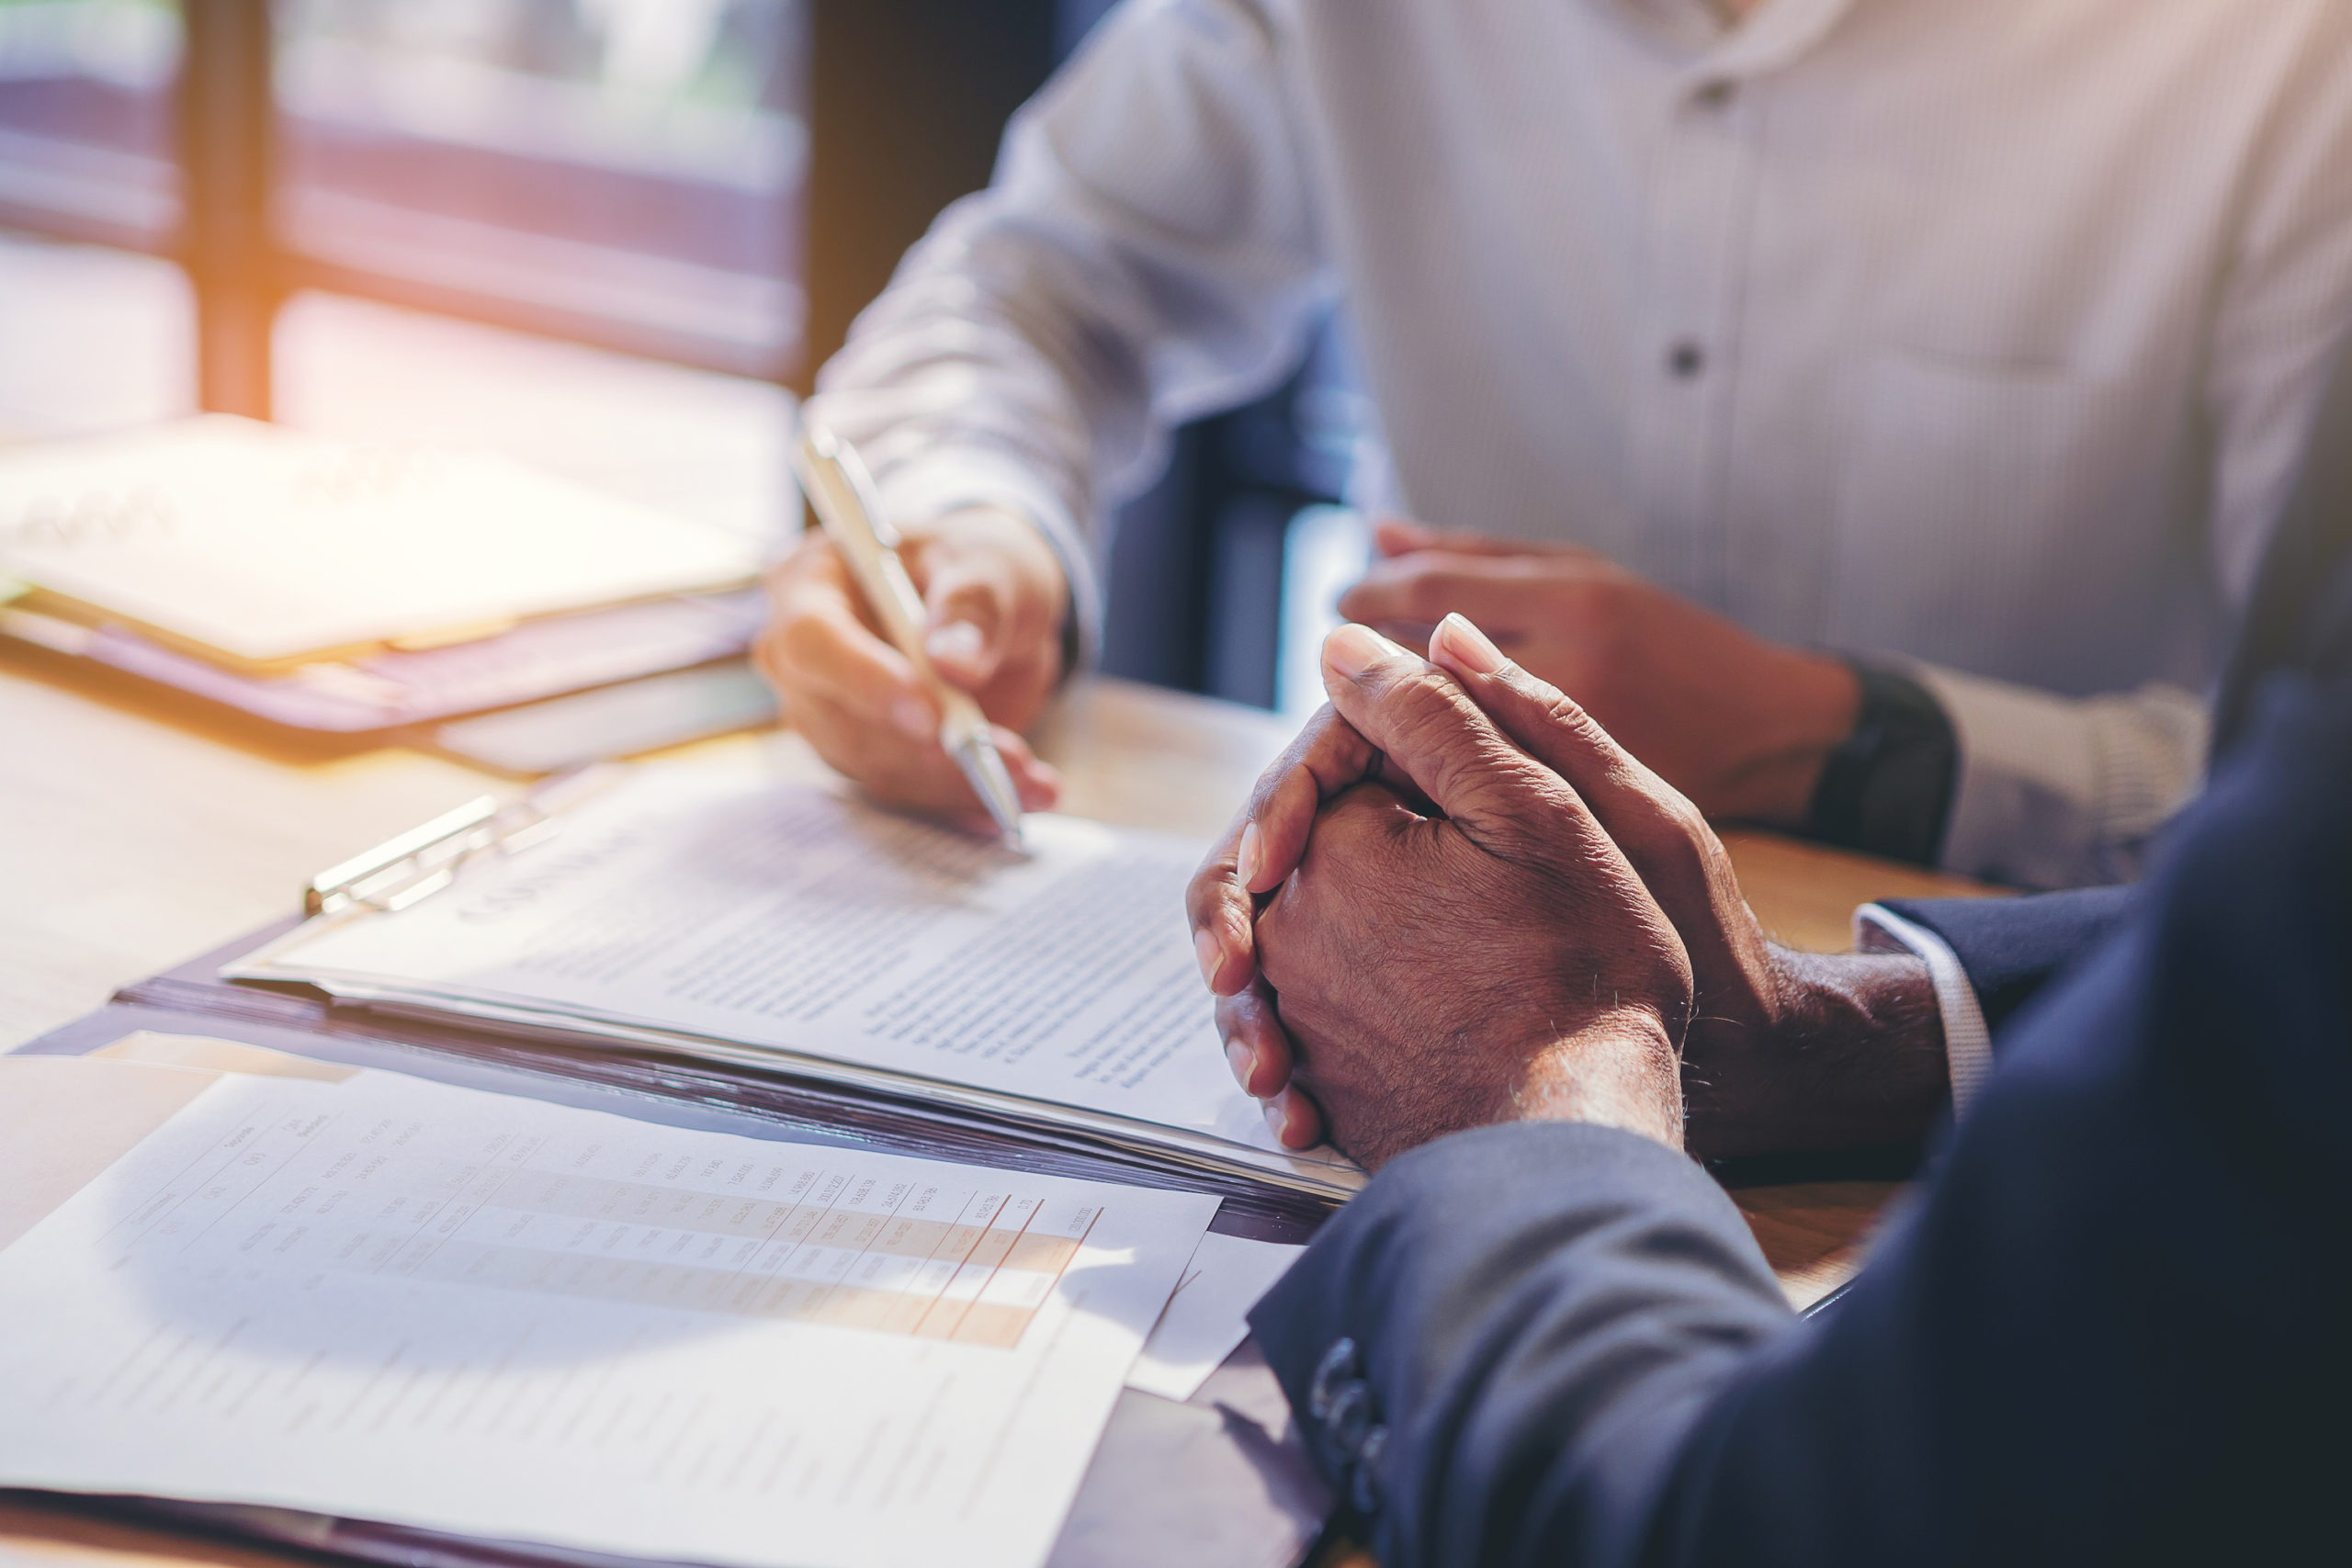 demand letters for breach of contract concept.businessman reading documents at meeting, business partner considering contract terms before signing checking legal contract law conditions